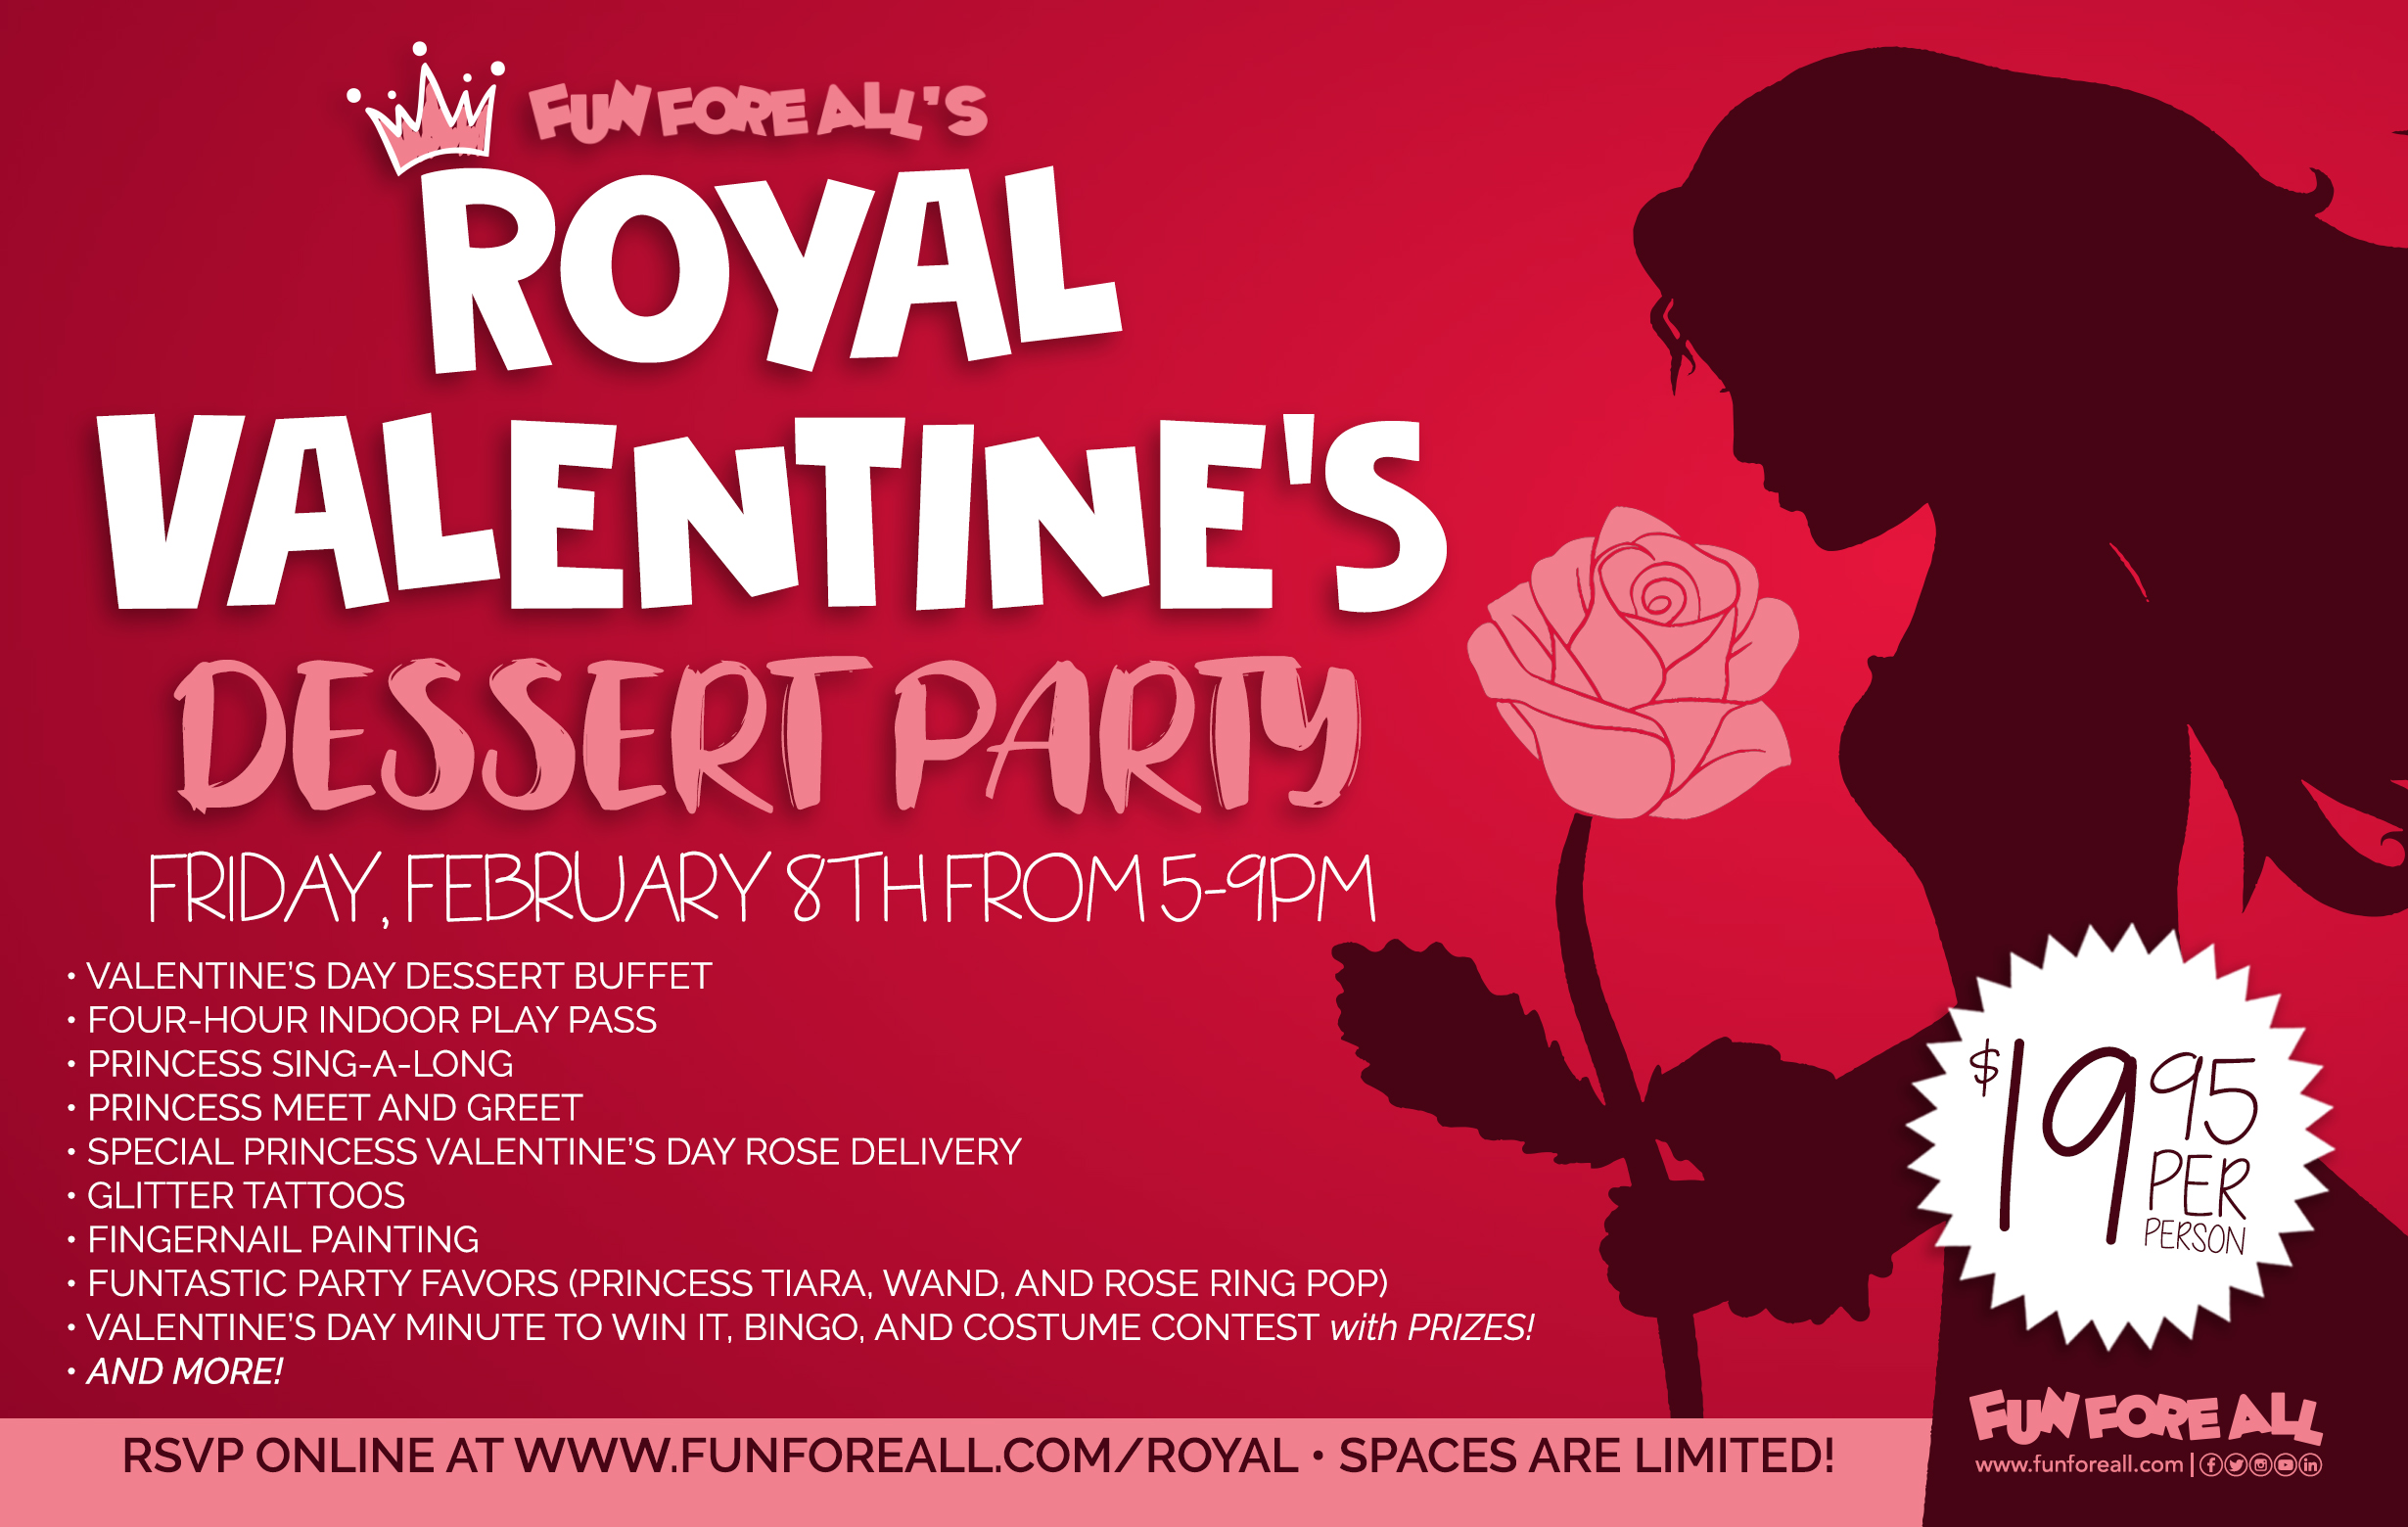 ROYAL VALENTINE'S DESSERT PARTY FLYER (2019)